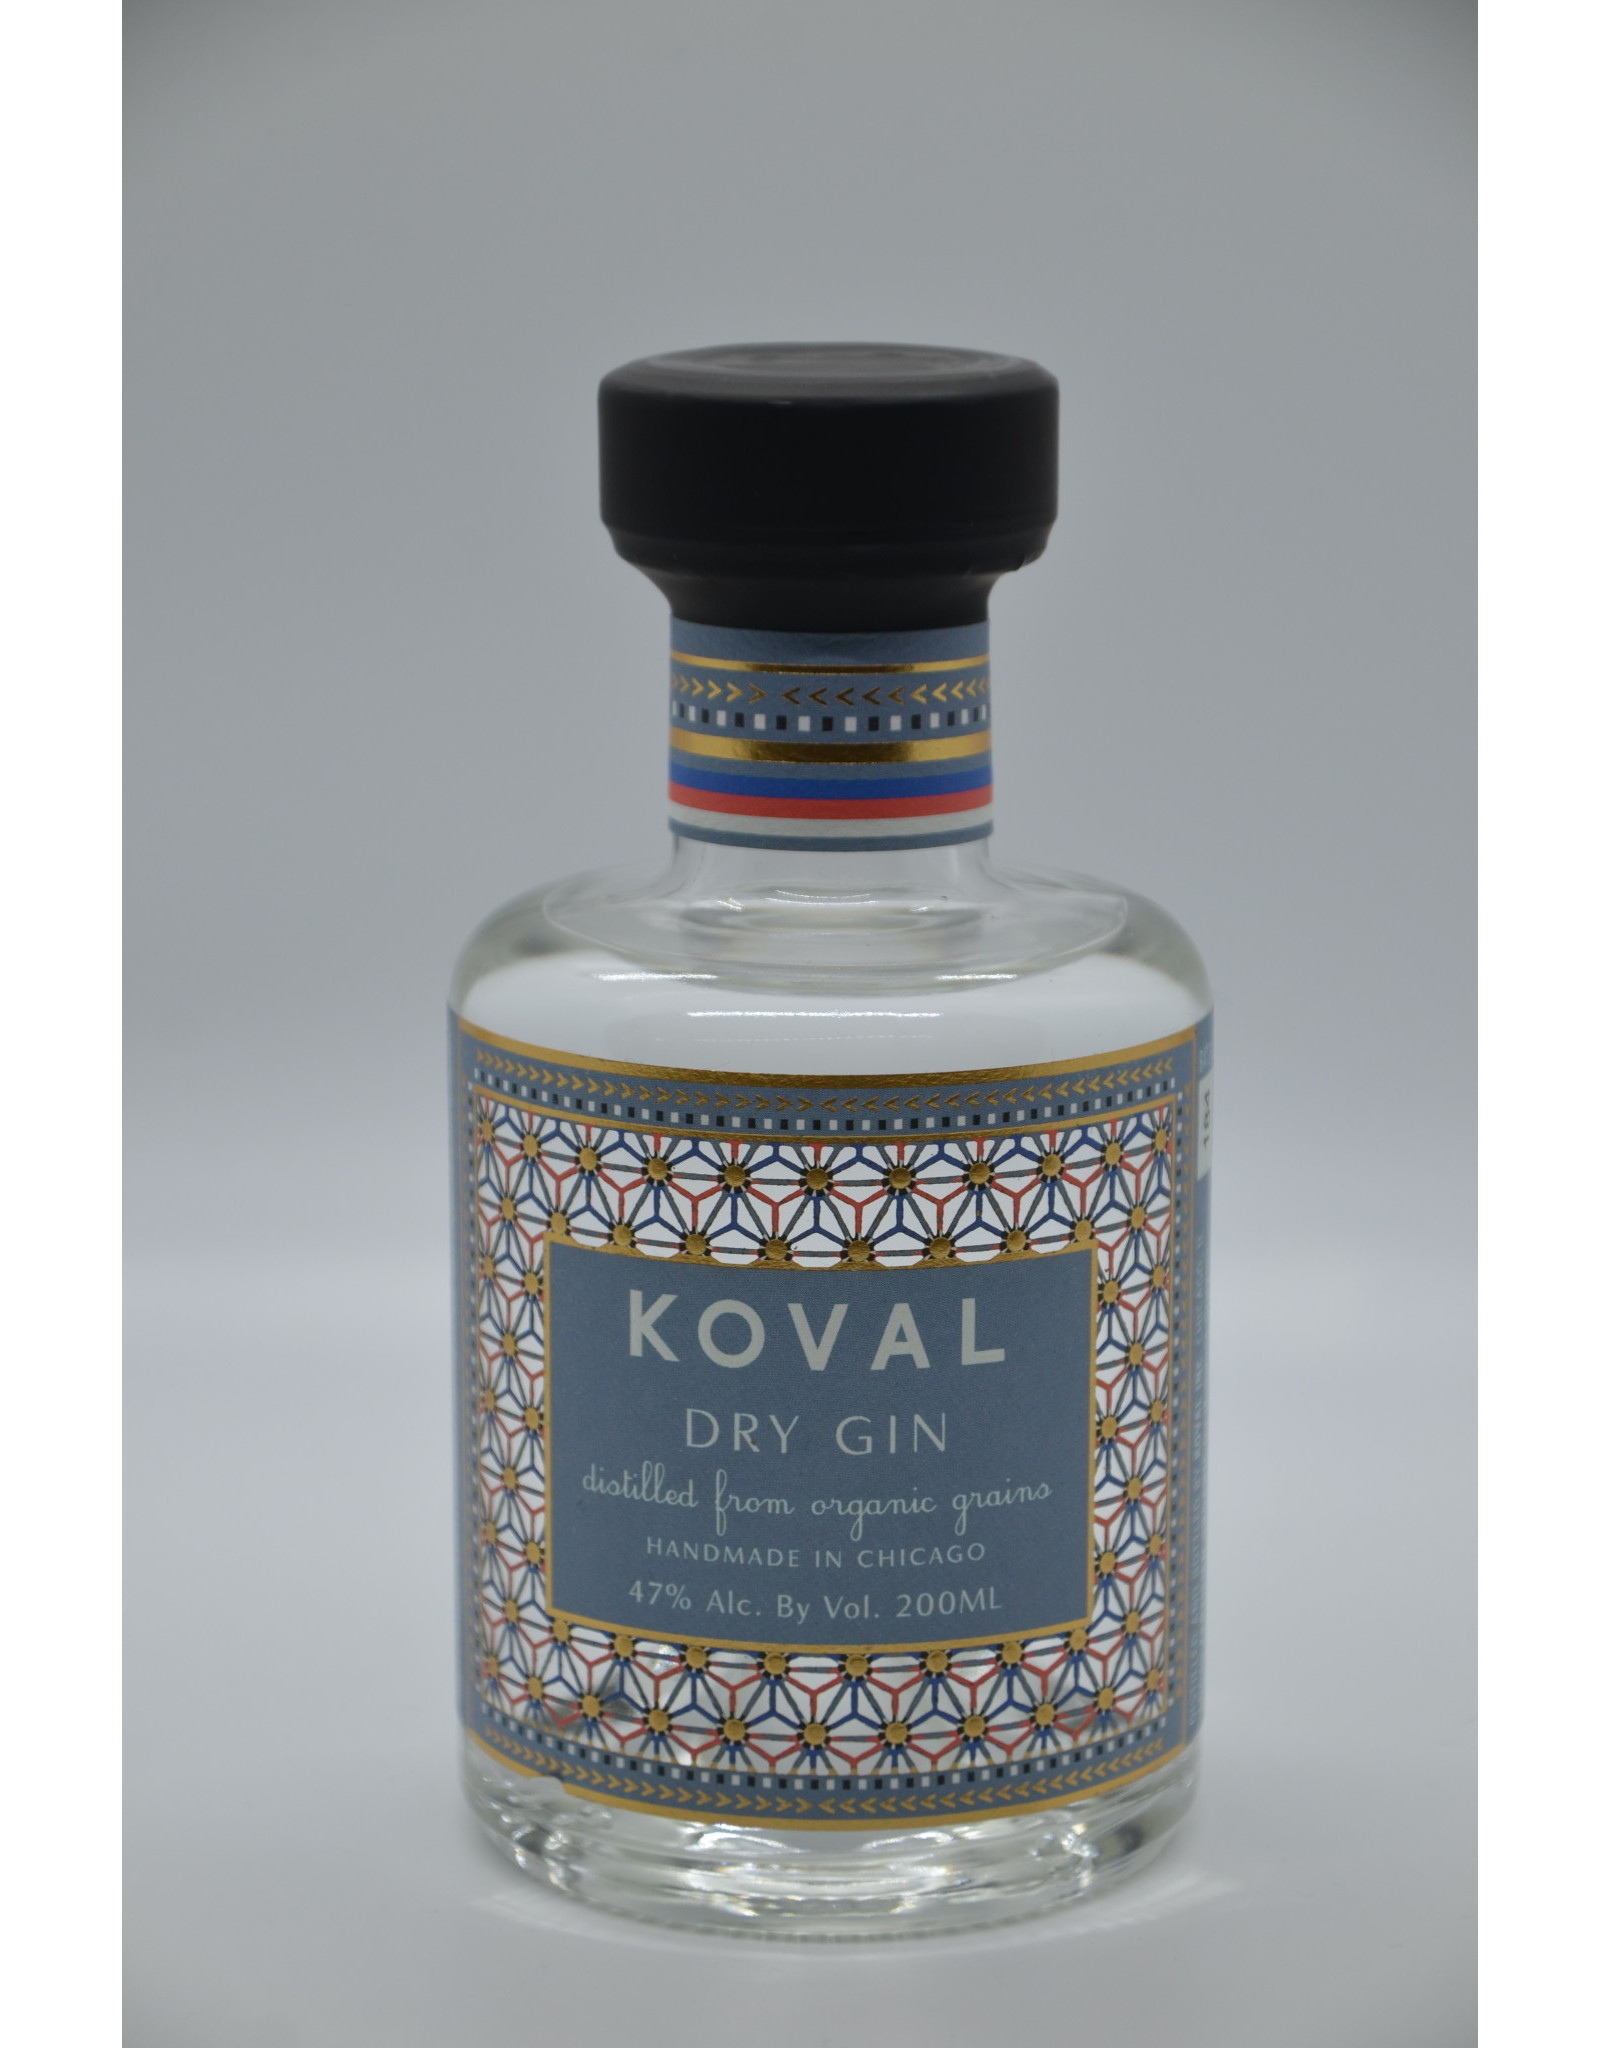 USA Koval Dry Gin 200ml